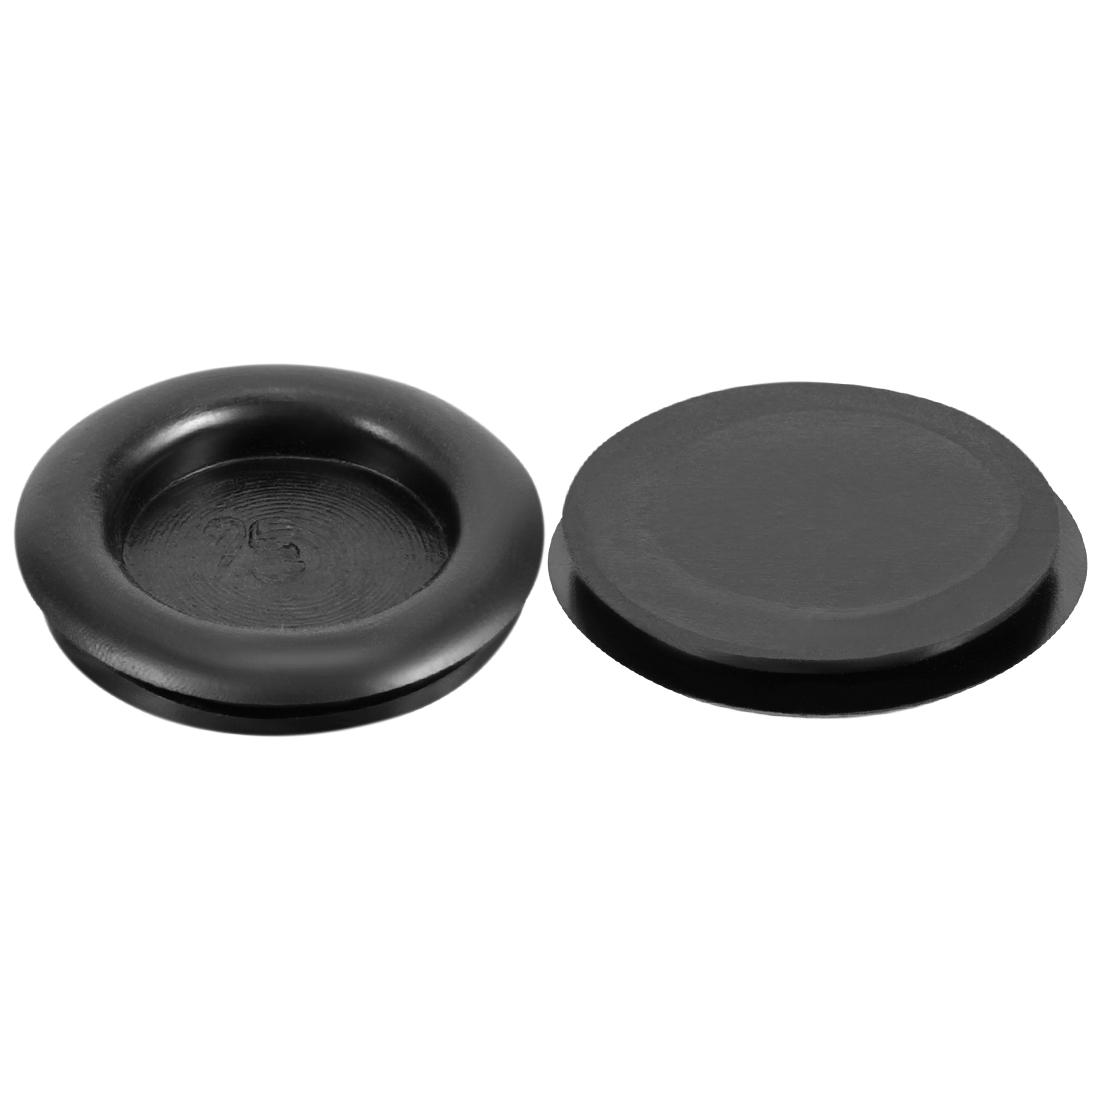 Wire Protector Oil Resistant Rubber Grommets 25mm Mounting Dia 20Pcs Black Color